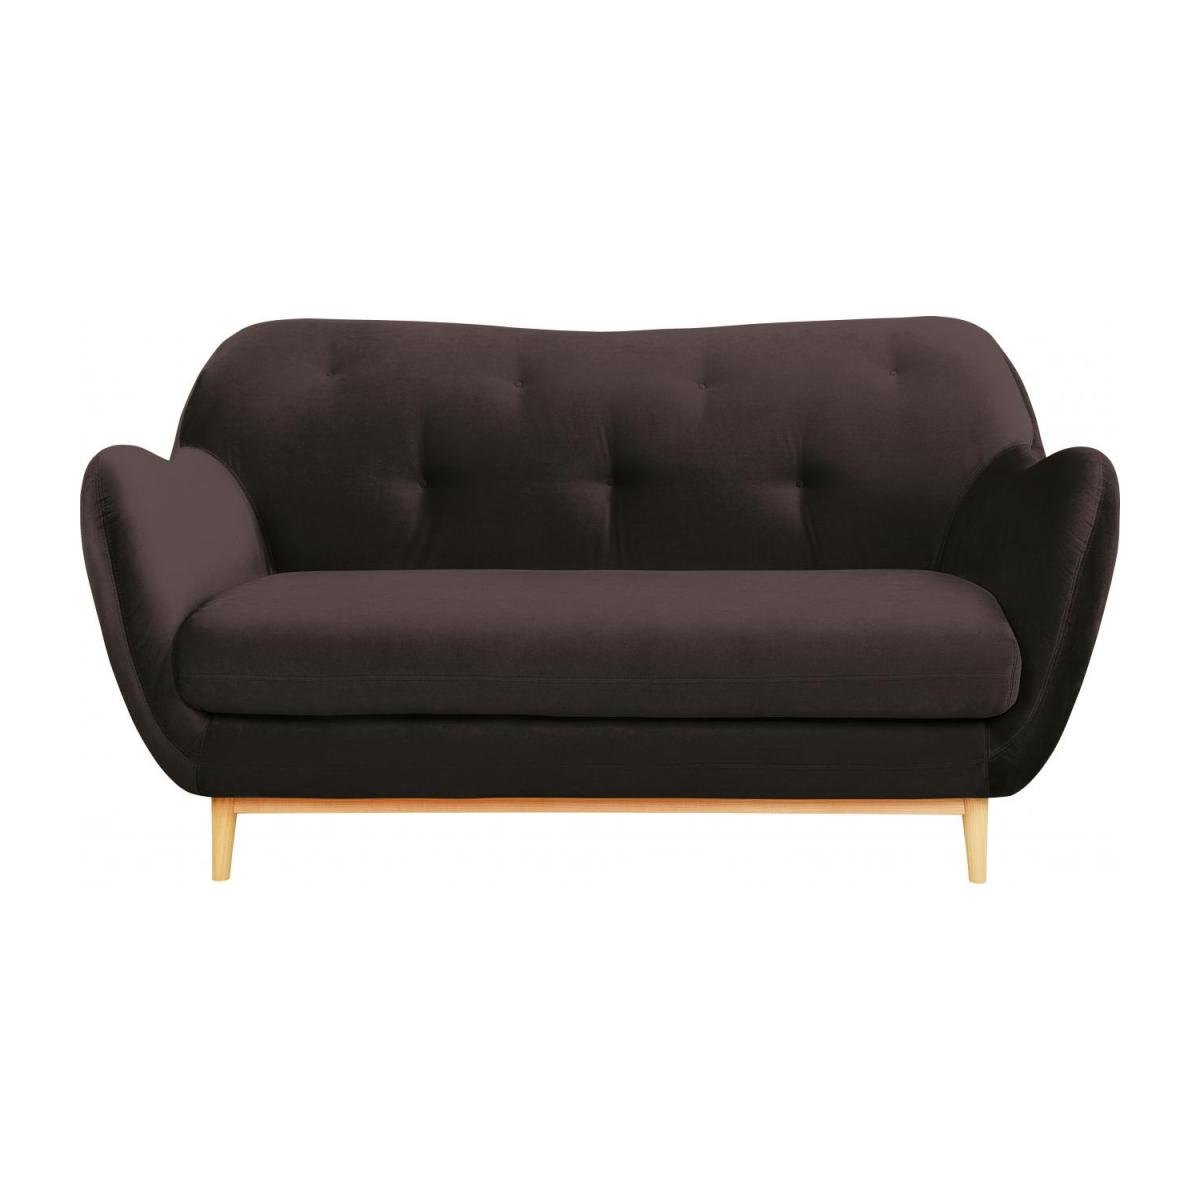 2-seat sofa made of velvet, grey n°2